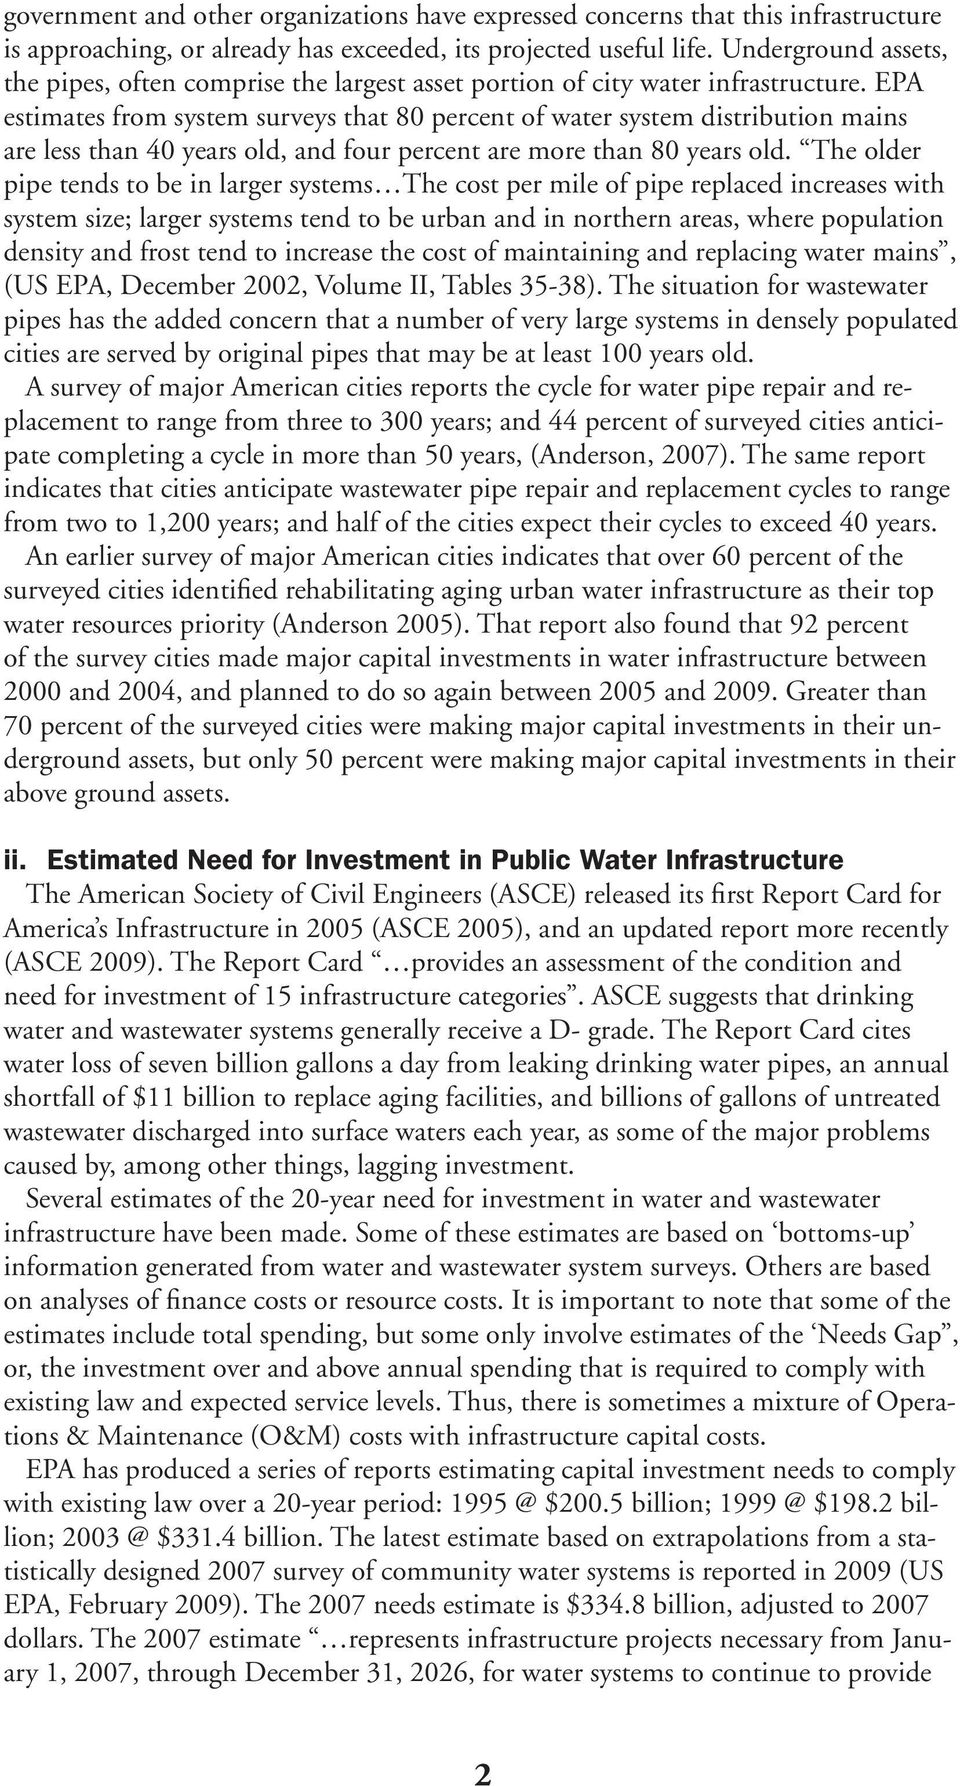 EPA estimates from system surveys that 80 percent of water system distribution mains are less than 40 years old, and four percent are more than 80 years old.